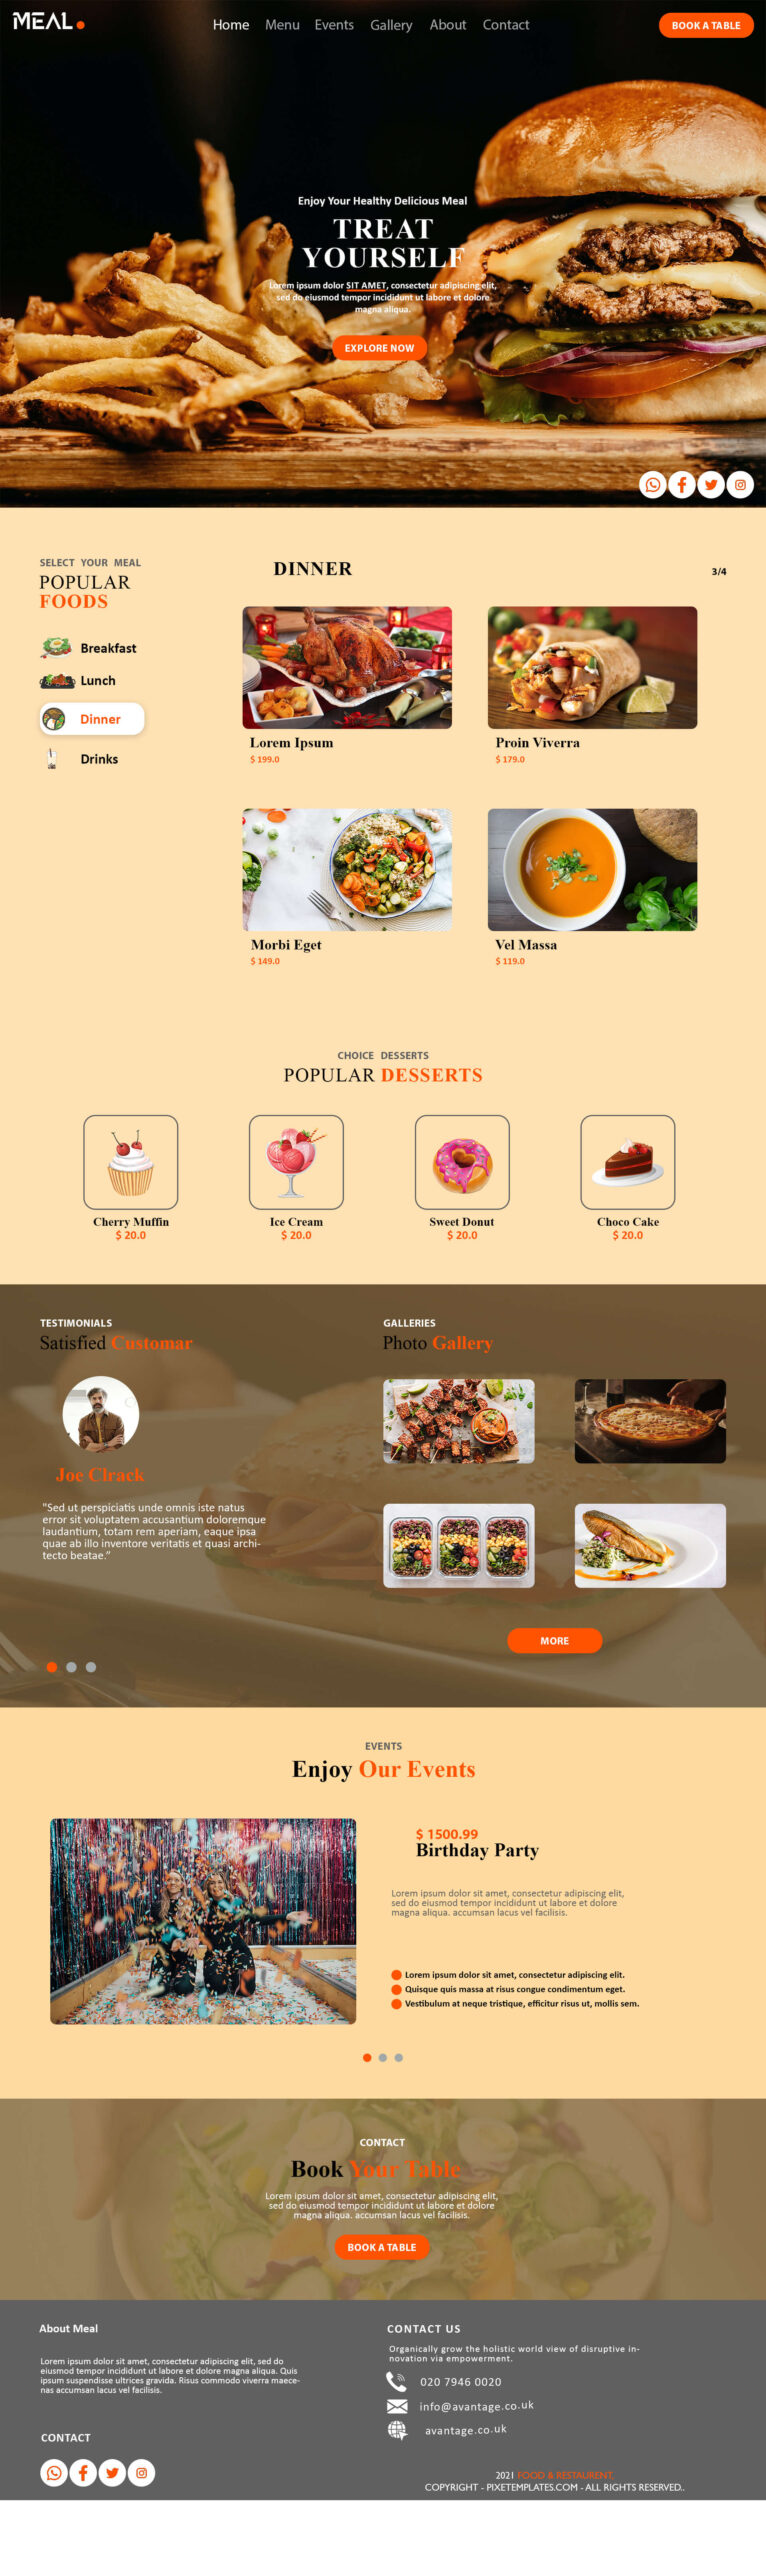 Treat Yourself, Web Template for Fast Food Restaurant